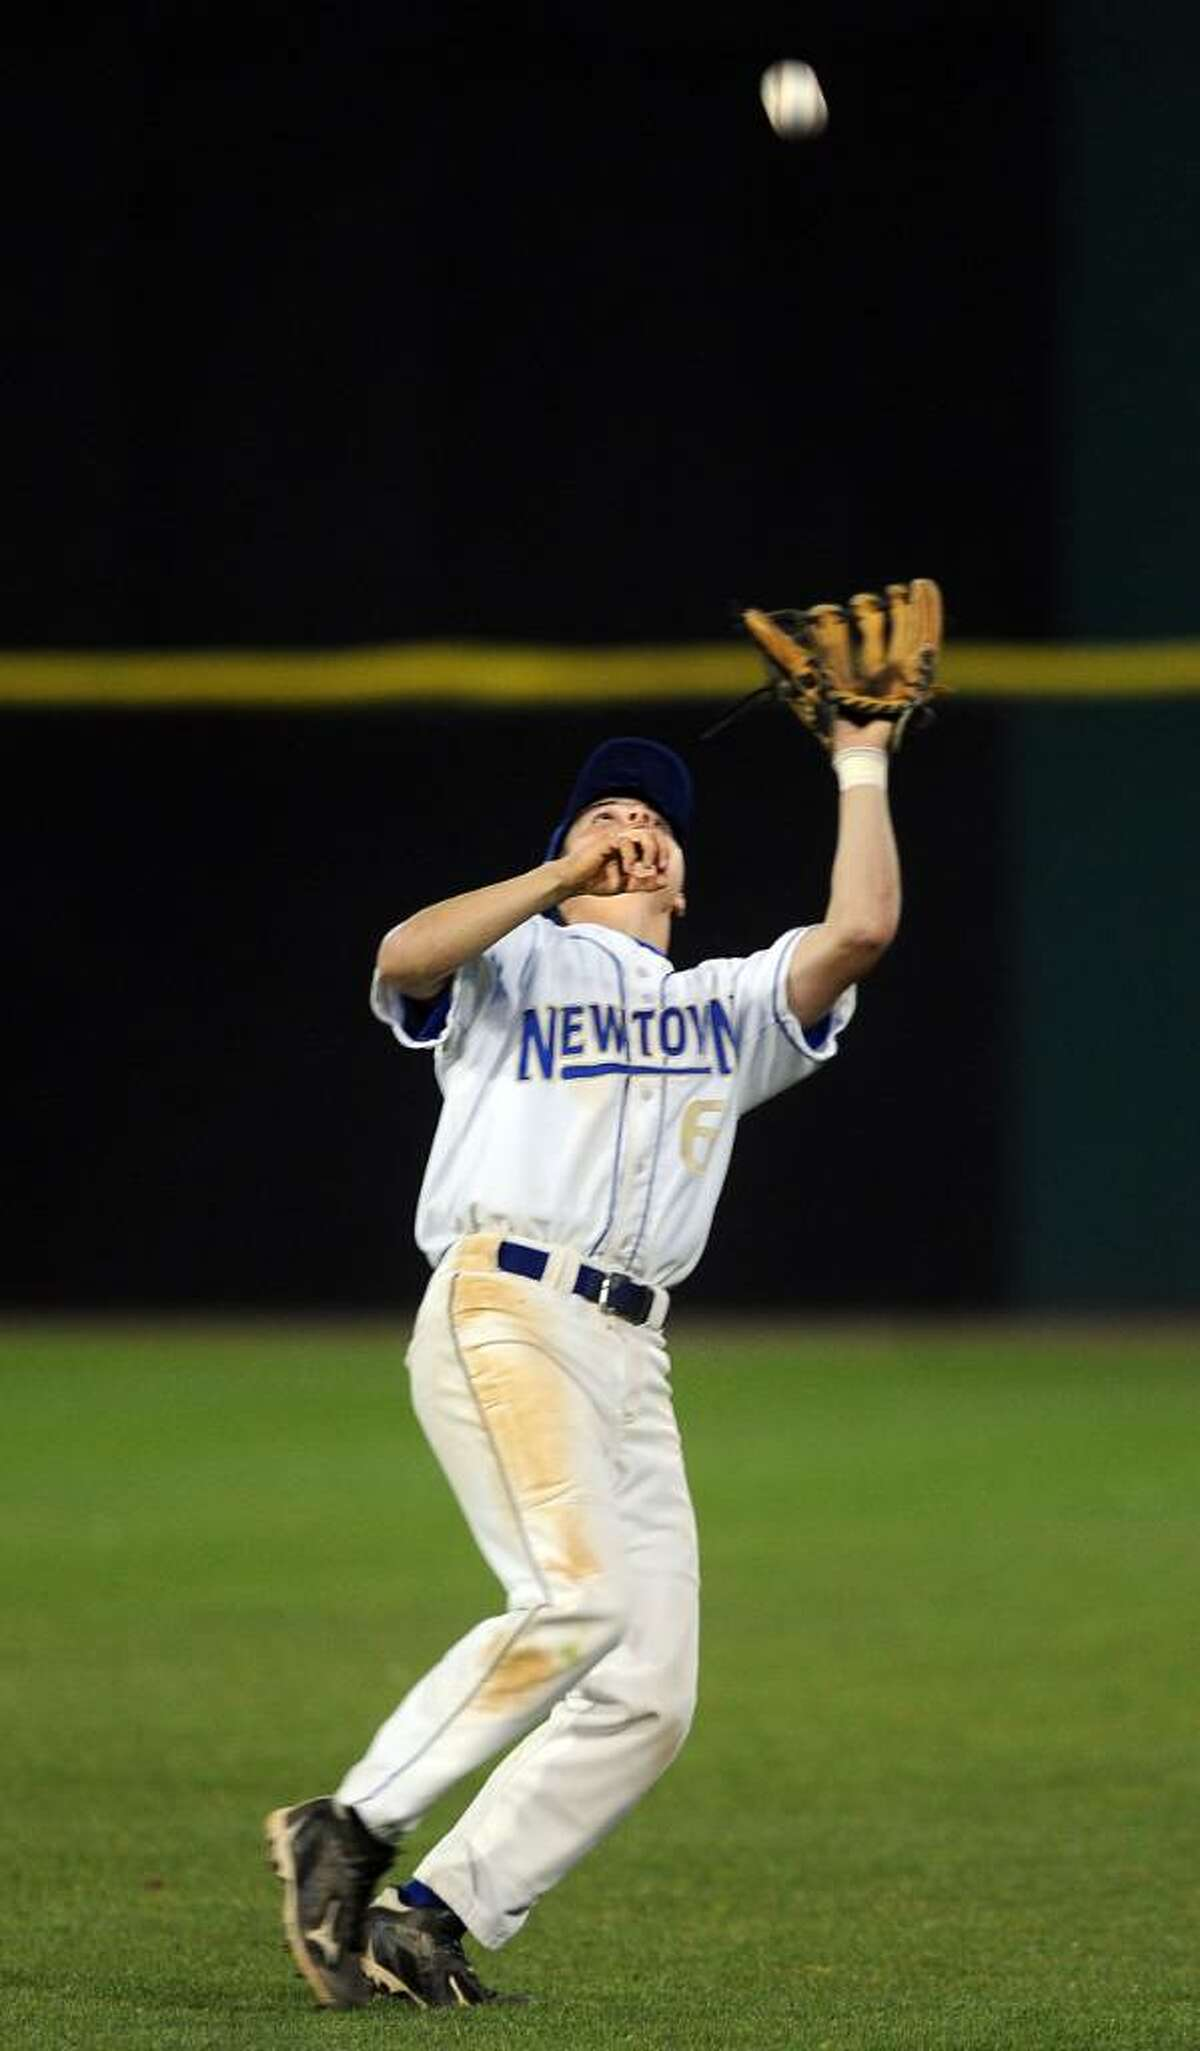 Newtown's Evan Noonan leans back to make a catch during Friday night's game against Weston at the Arena at Harbor Yard in Bridgeport.